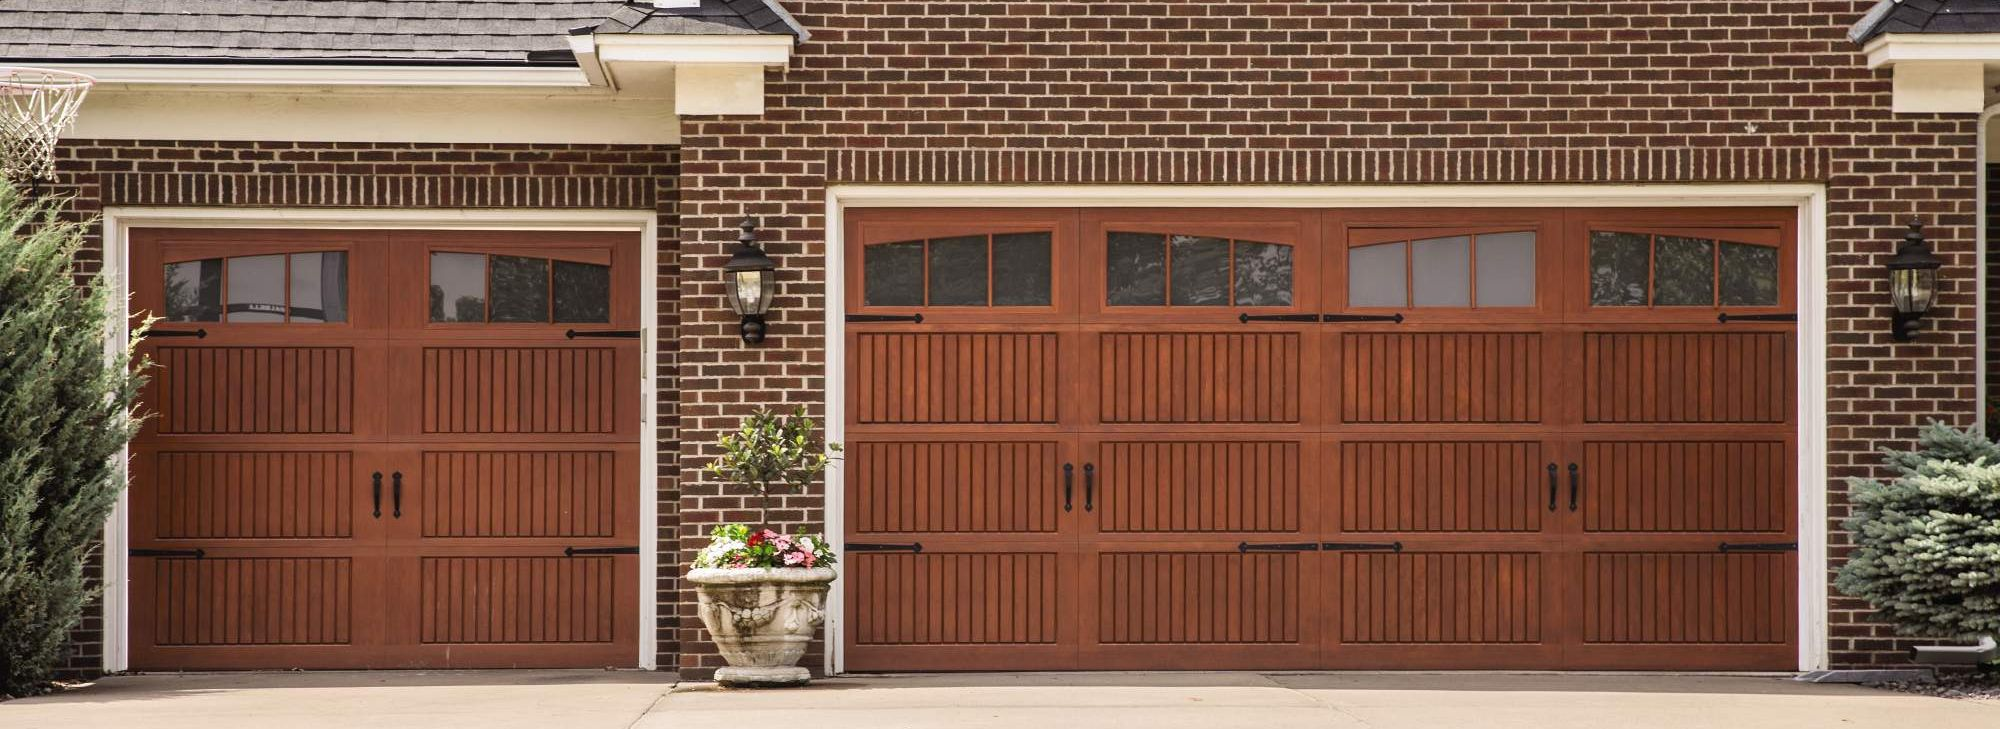 Impression Collection FIberglass Garage Door Cherry-Window Arch